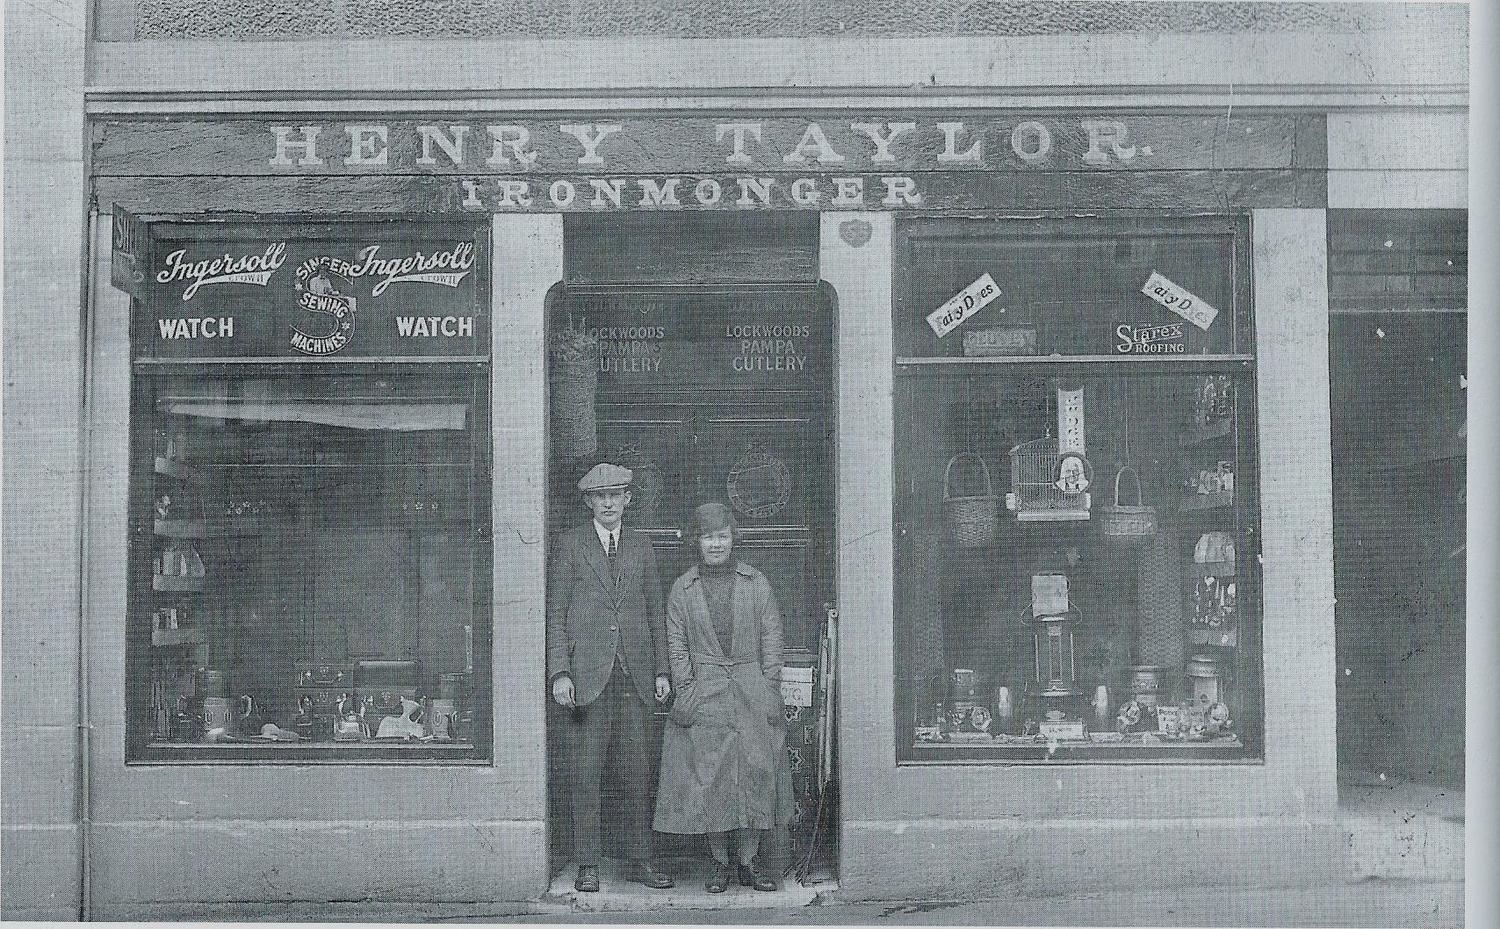 No.55 New St. a boot shop built in 1845. It was taken over in 1855 by Henry Taylor and is still an Iron Monger's shop today